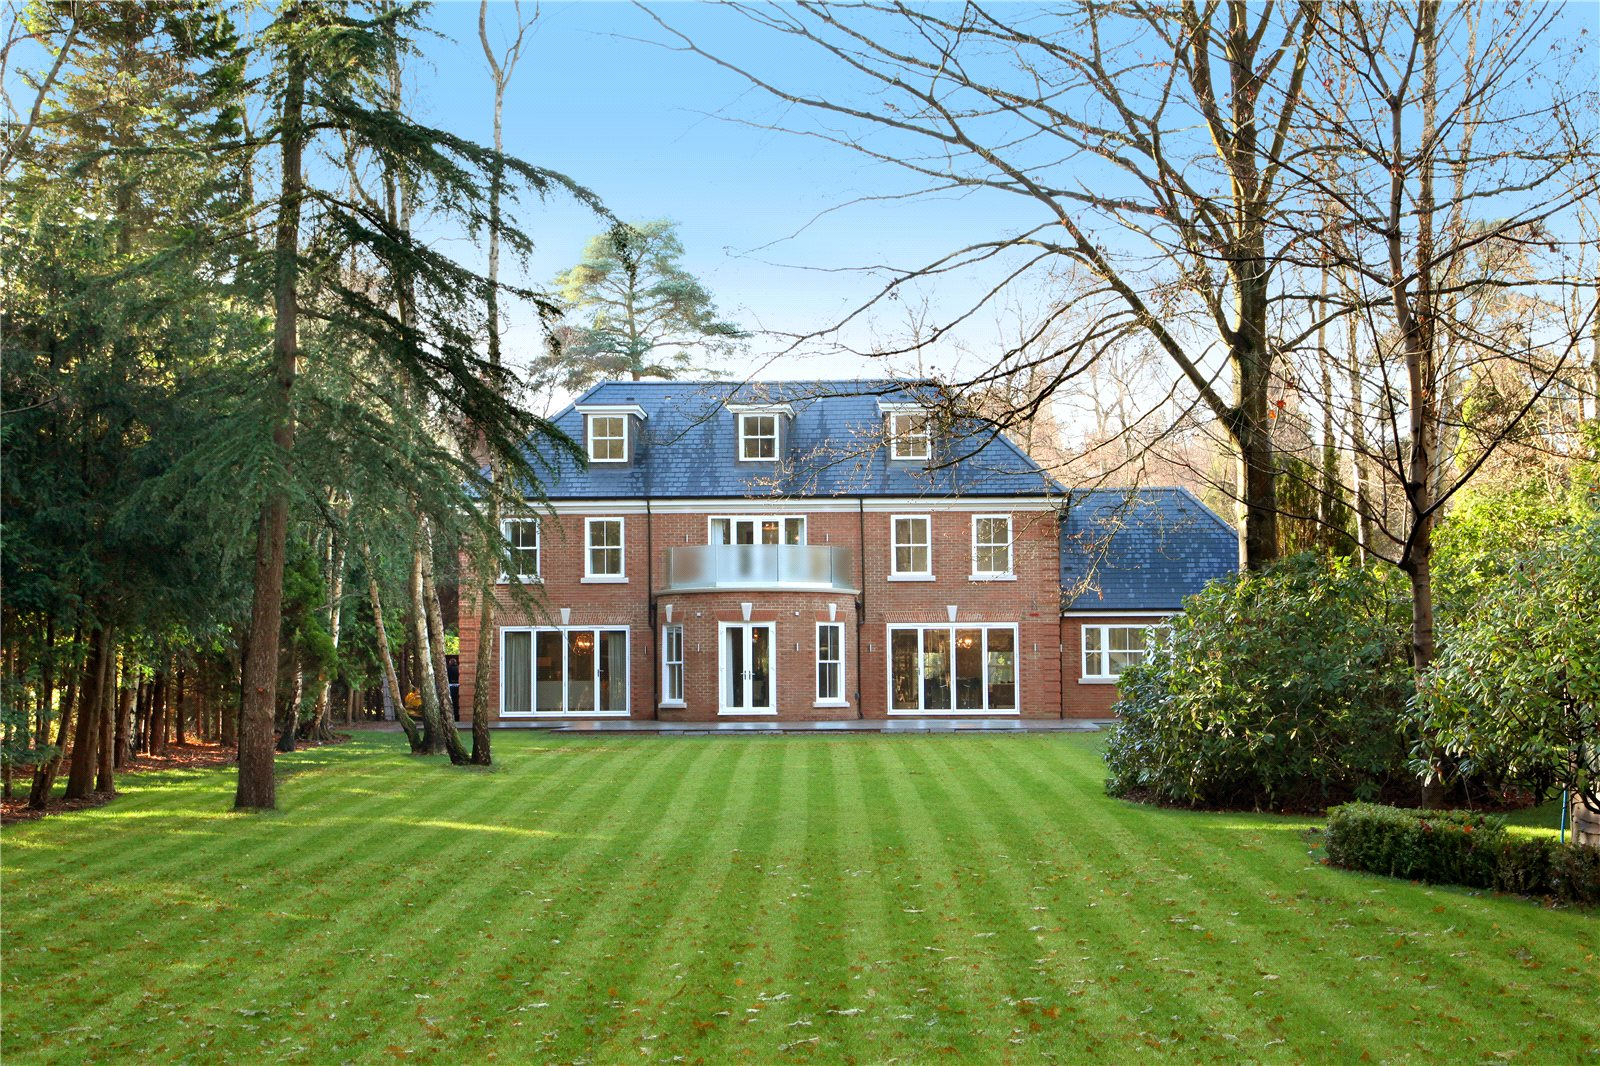 Single Family Home for Sale at Prince Consort Drive, Ascot, Berkshire, SL5 Ascot, England